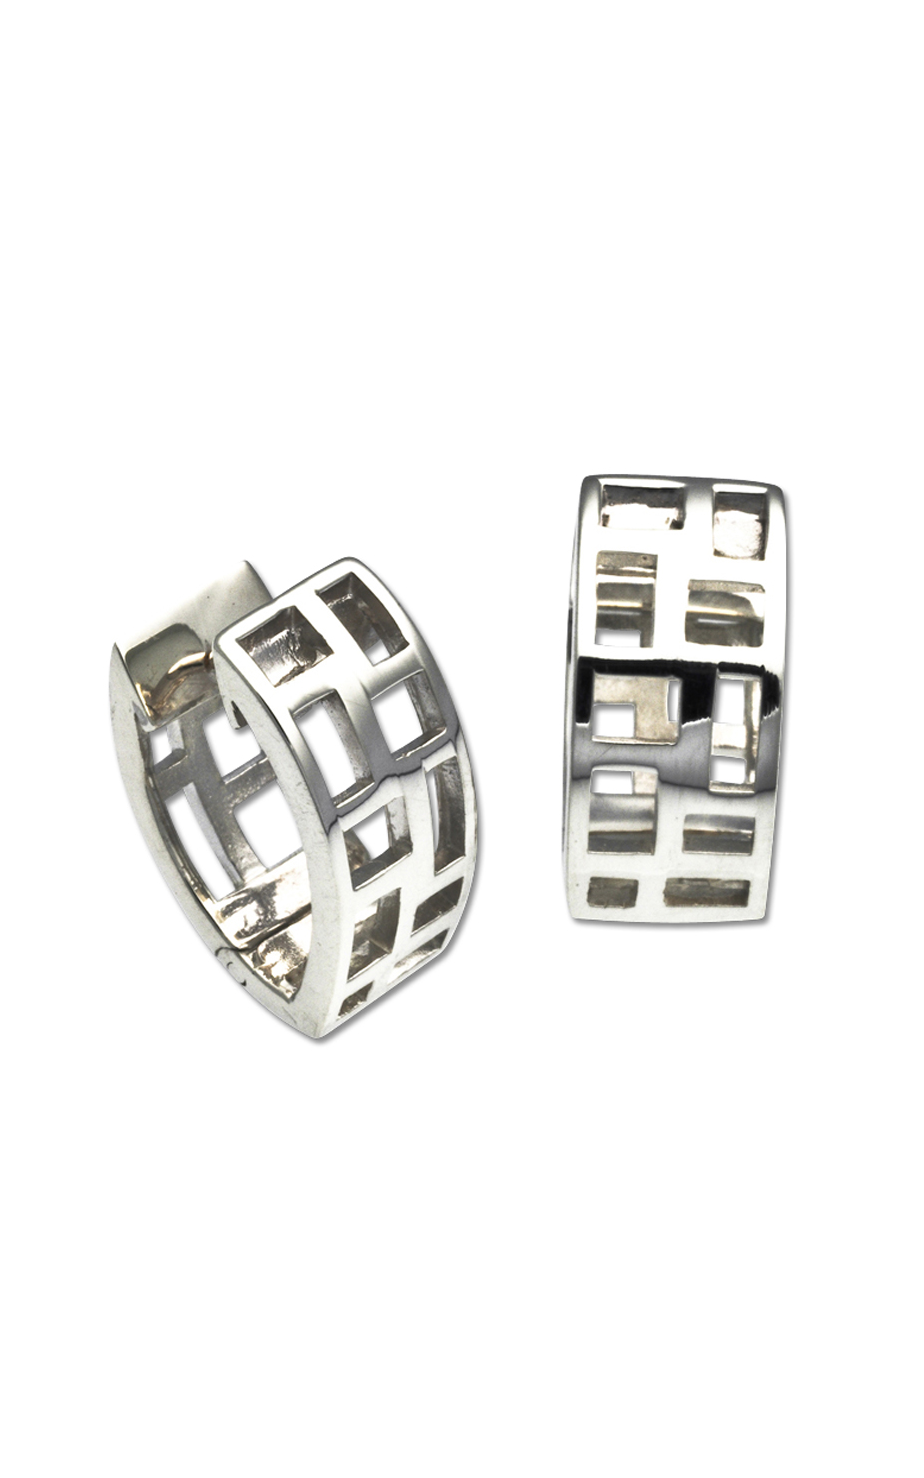 Zina Contemporary Earrings B603 product image